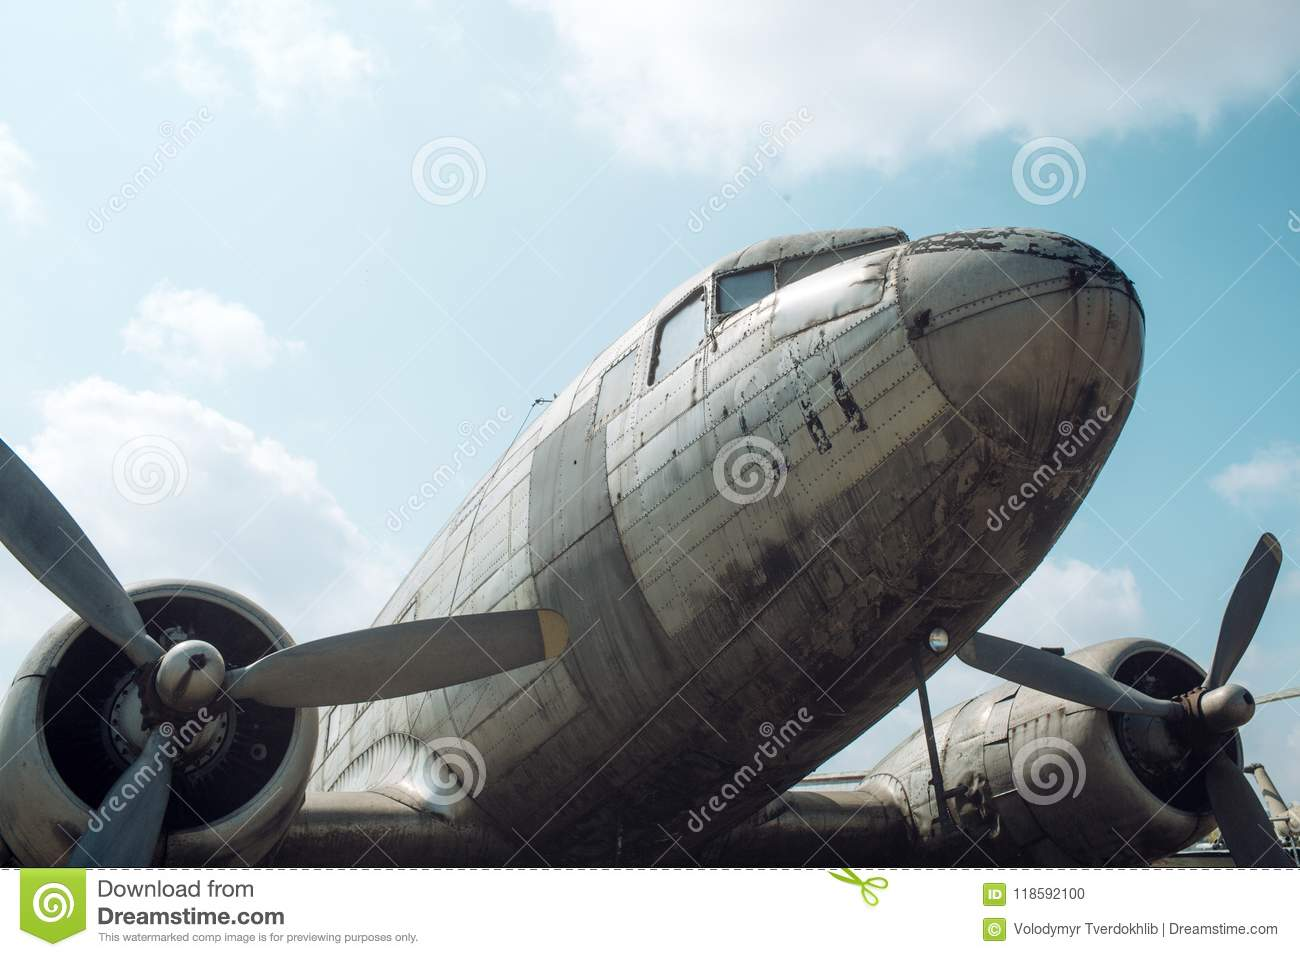 Airscrews of plane. Aircraft propellers detail. Rotation and swirling. Aviation and air transport. Wanderlust or